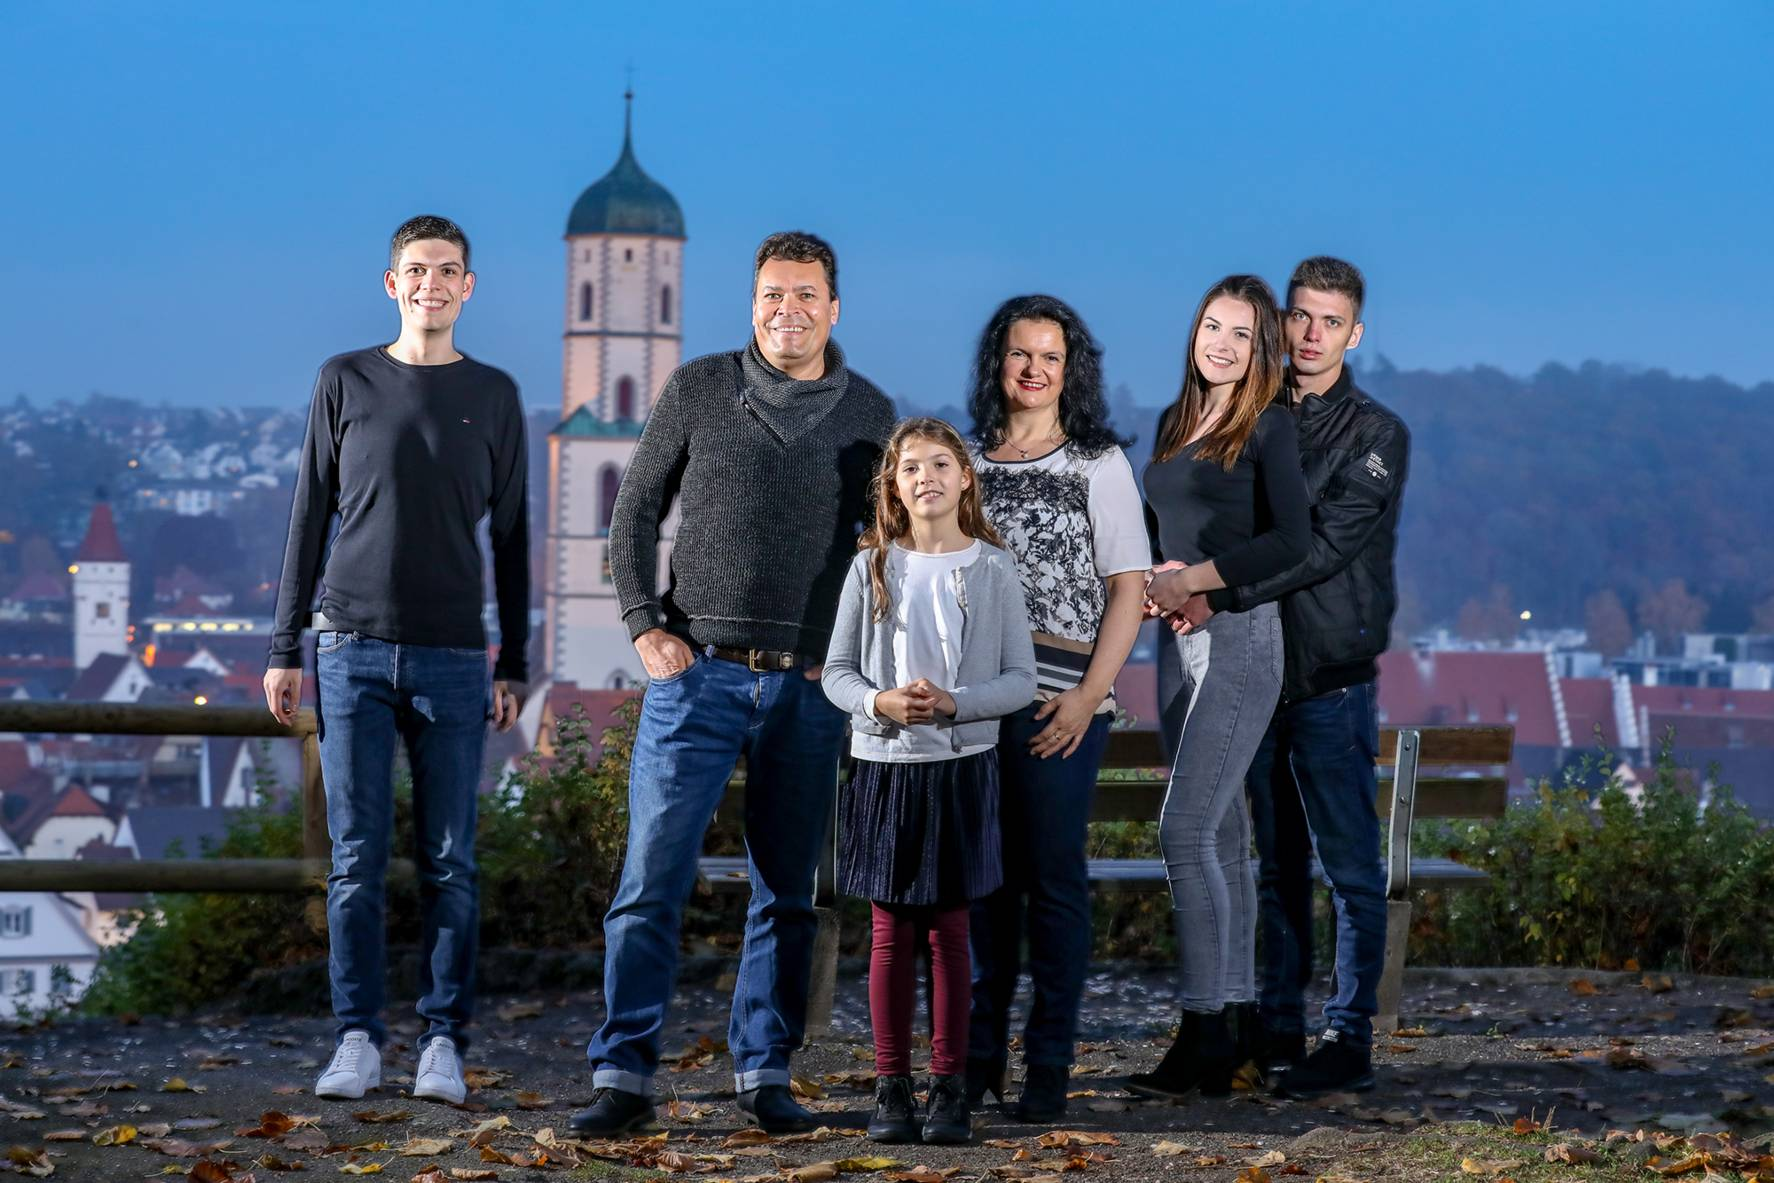 Nico_Bergmann_Photo_Family_011